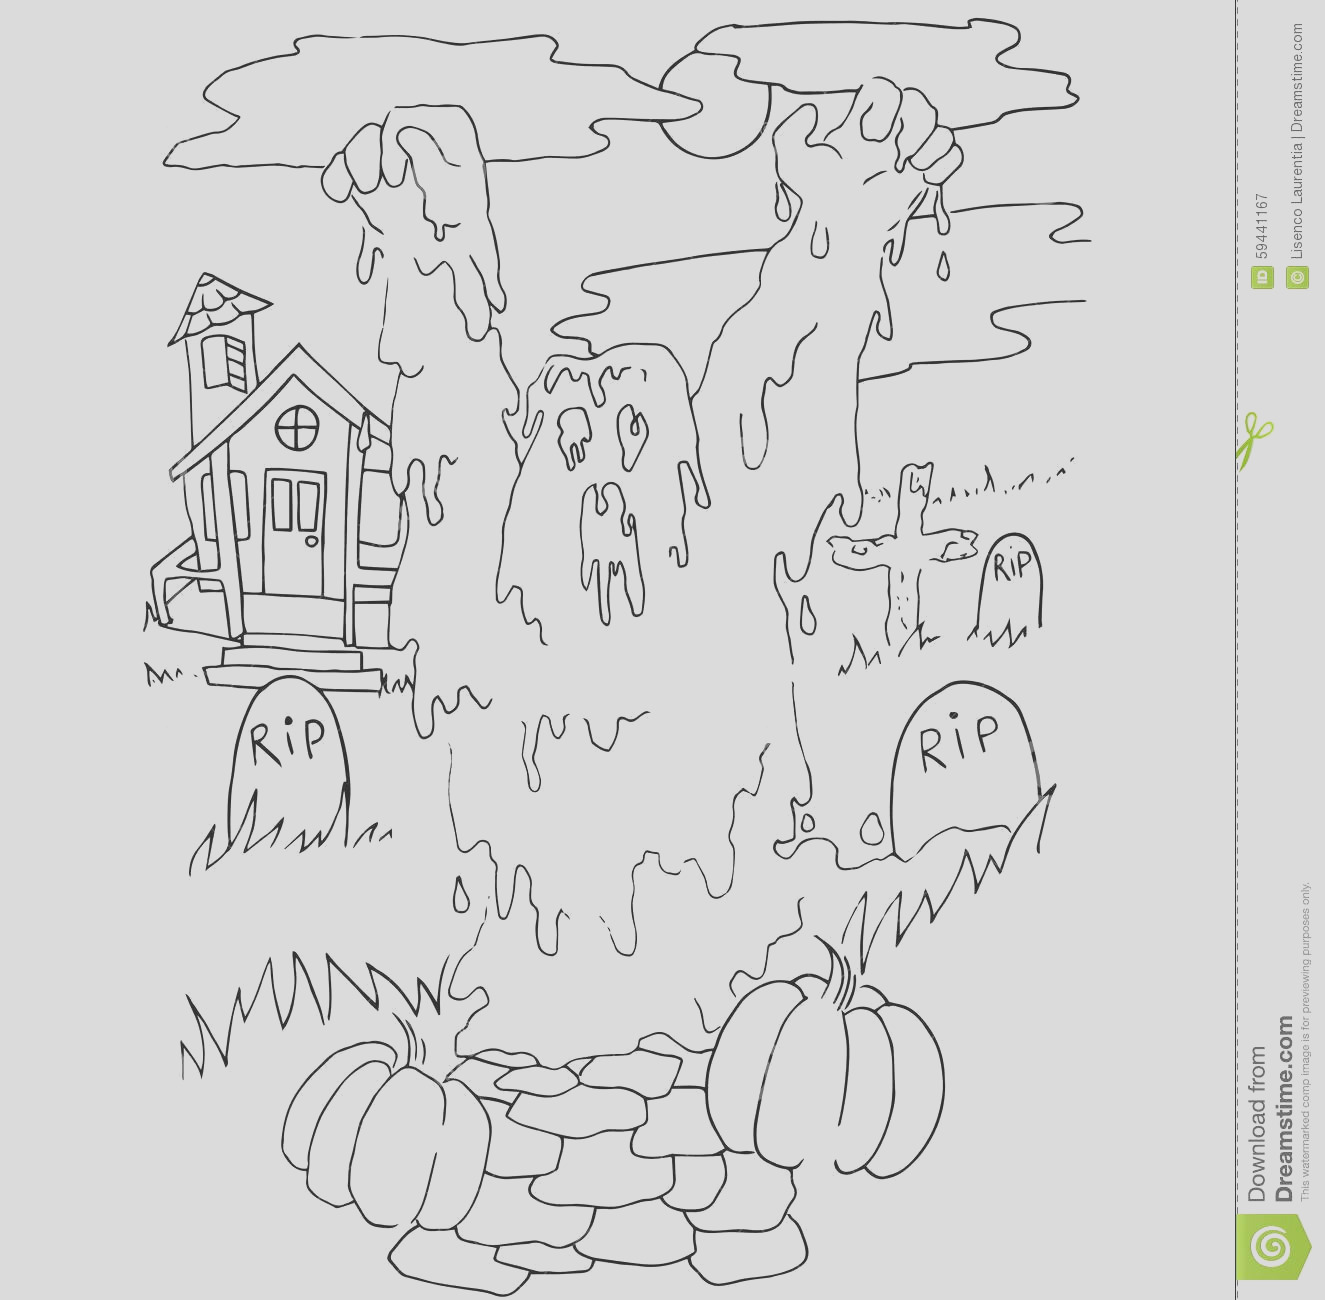 stock illustration simple coloring halloween theme made hand drawing black pencil white background image